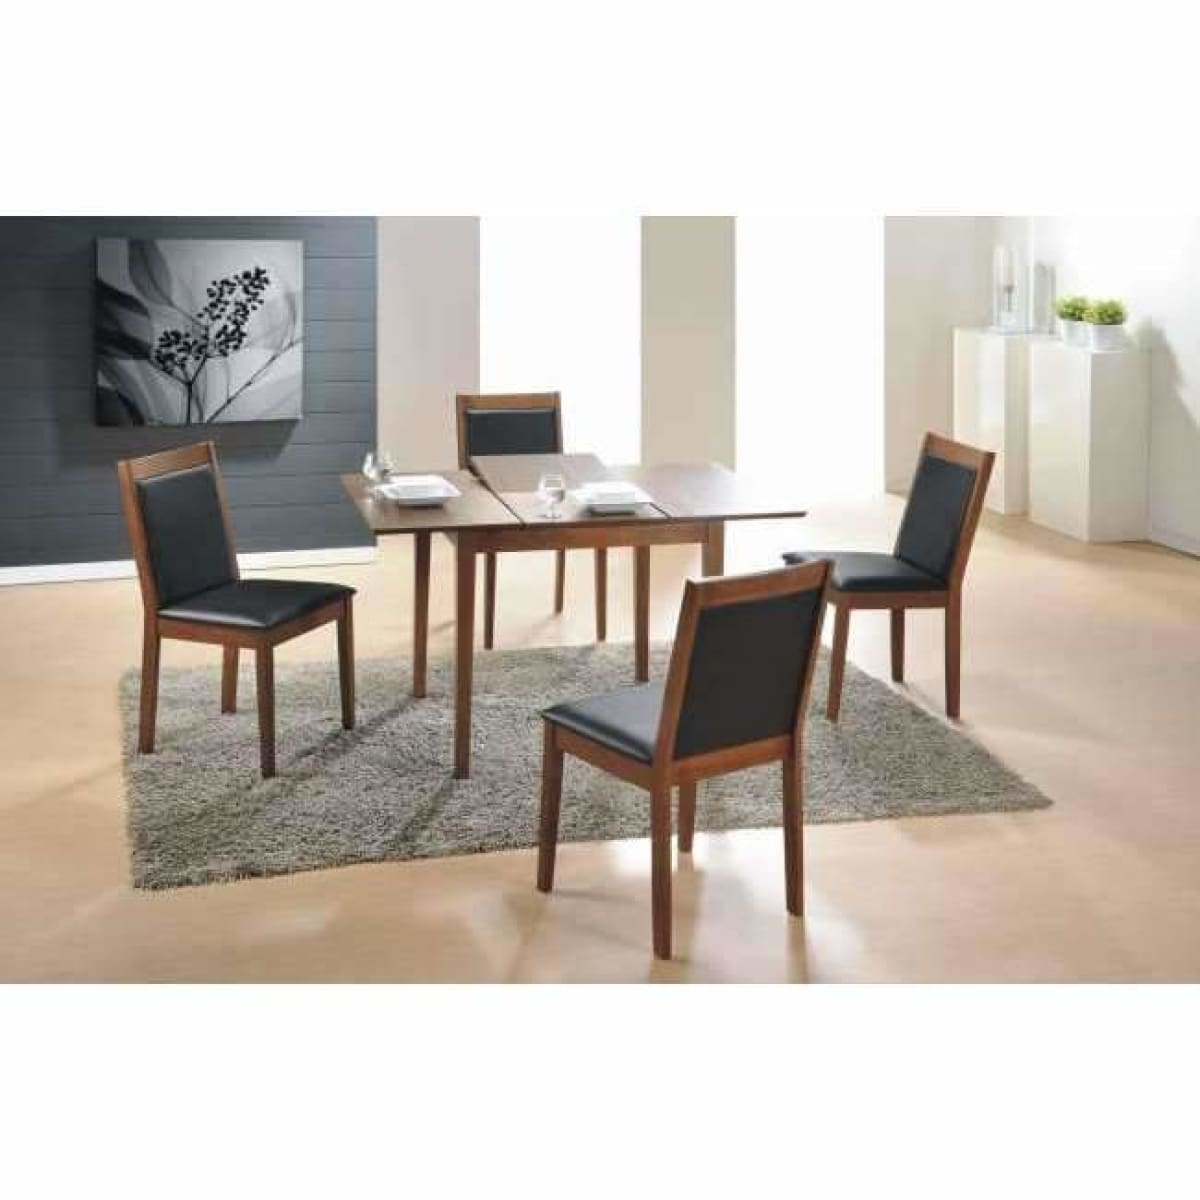 Walsh Upholstered Chair - dining chairs